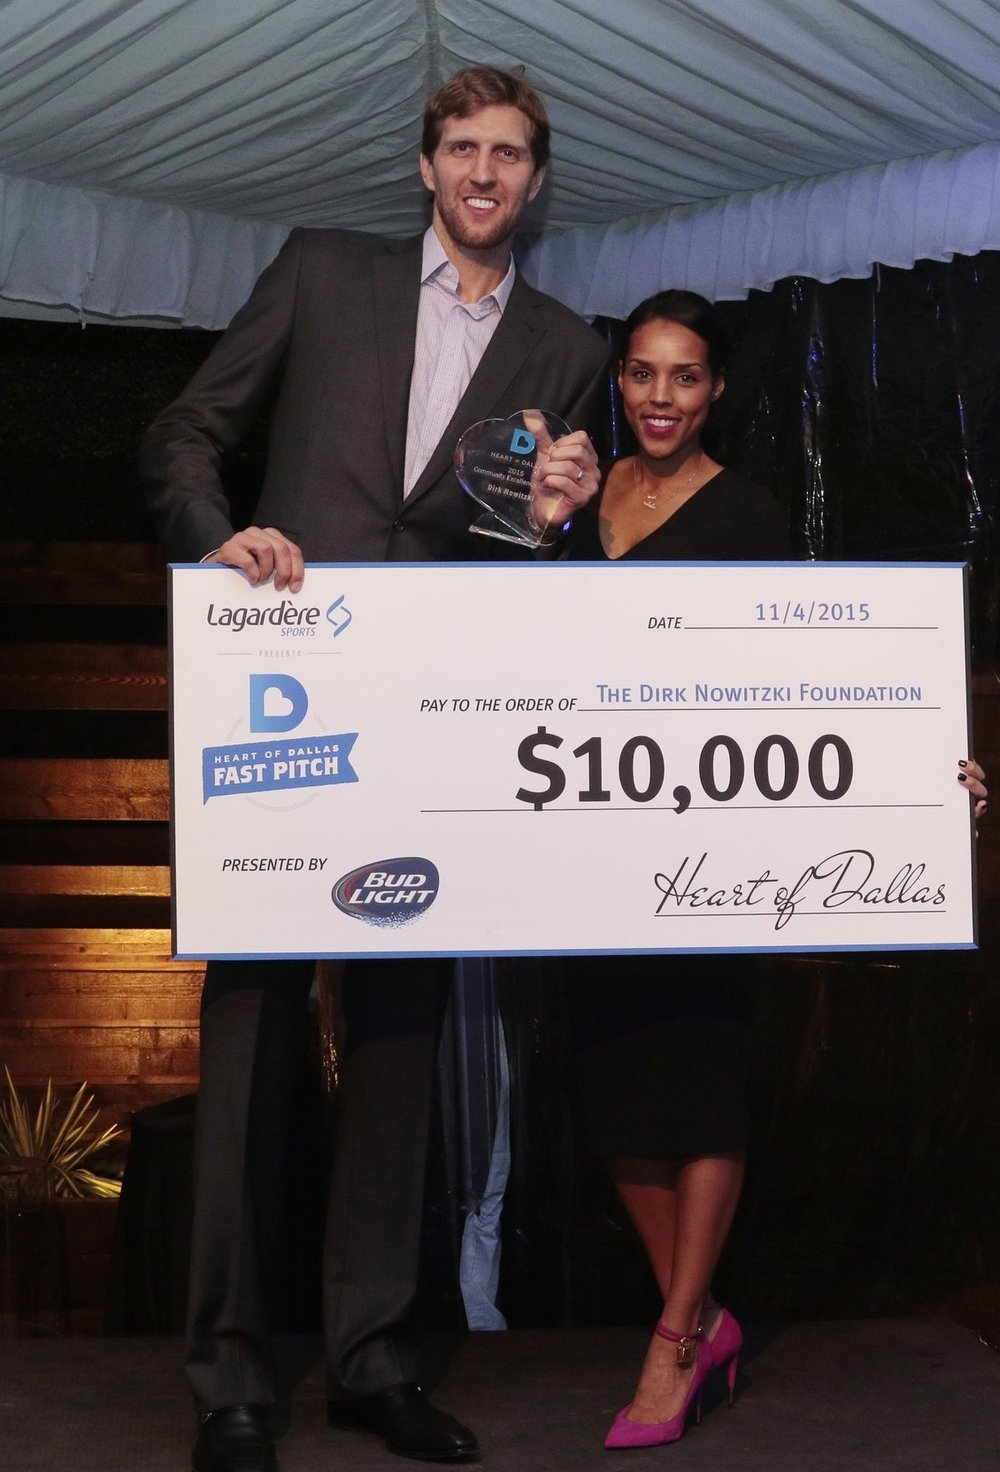 """[Fast Pitch] is a terrific event that helps shed light on what local nonprofits do for the city of Dallas. Being in sports allows us to give back in ways that many cannot. It was an honor to be the first recipient of the Community Excellence Award."" - - Dirk Nowitzki"